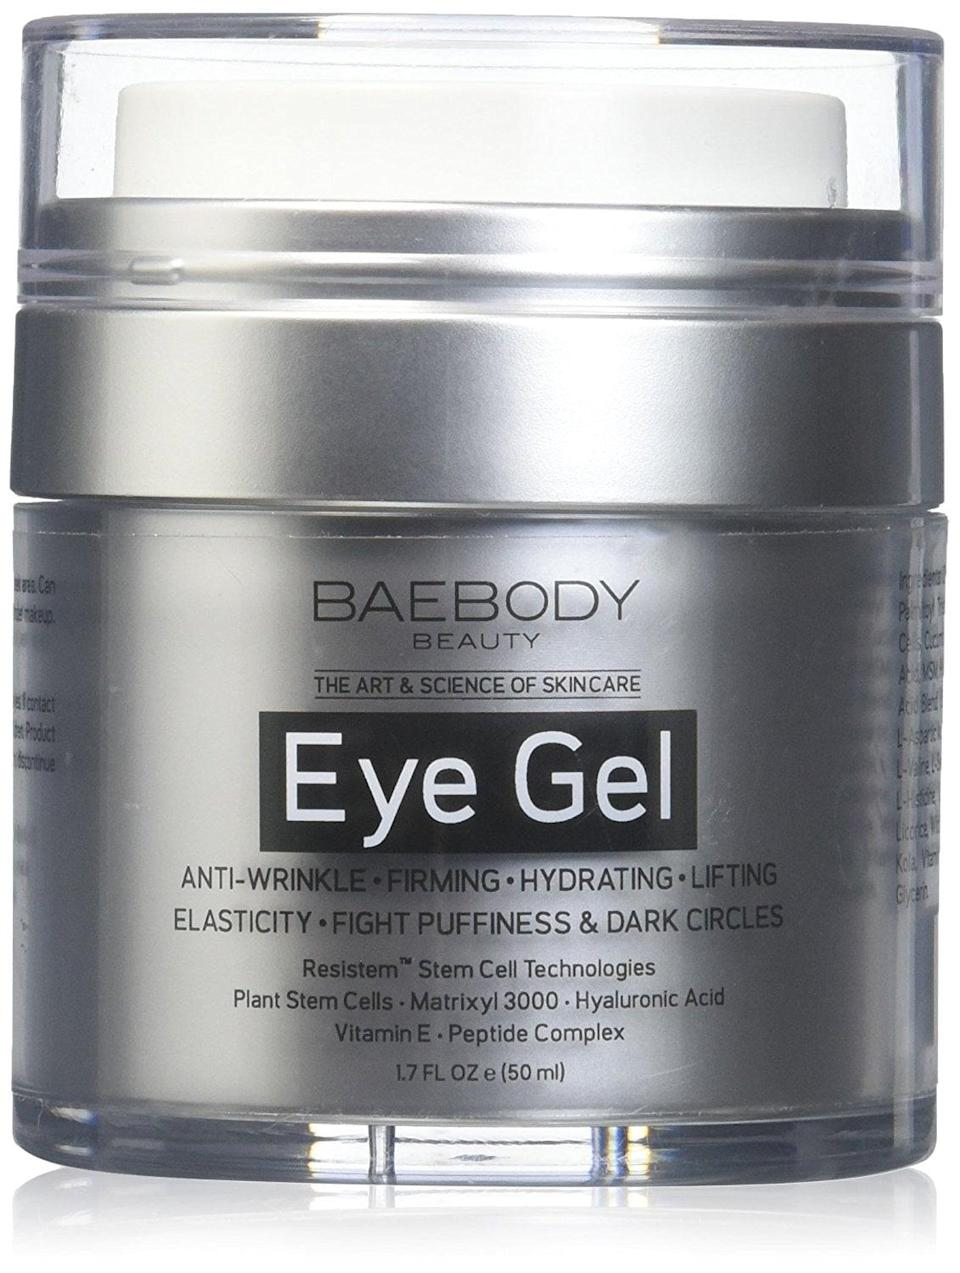 """<p>""""For years I have dealt with annoying dark circles and puffiness under my eyes. That's why I was excited to hear about <span>Baebody Eye Gel</span> ($20, originally $24). It's currently exploding in sales on Amazon by 9,000 percent, and for good reason. It claims to drastically reduce the appearance of dark circles, puffiness, sagging, or wrinkles. Customers are absolutely loving it, <span>posting photos of their results</span>.</p> <p>Almost 10,000 people have reviewed the eye gel, and 67 percent of them give it five stars. The ingredients include hyaluronic acid, which hydrates and plumps skin; Matrixyl 3000, which firms skin; and plant stem cells to strengthen and protect against damage. You can <span>check out the customer reviews to see photo after photo</span> of real results."""" - MCW</p>"""